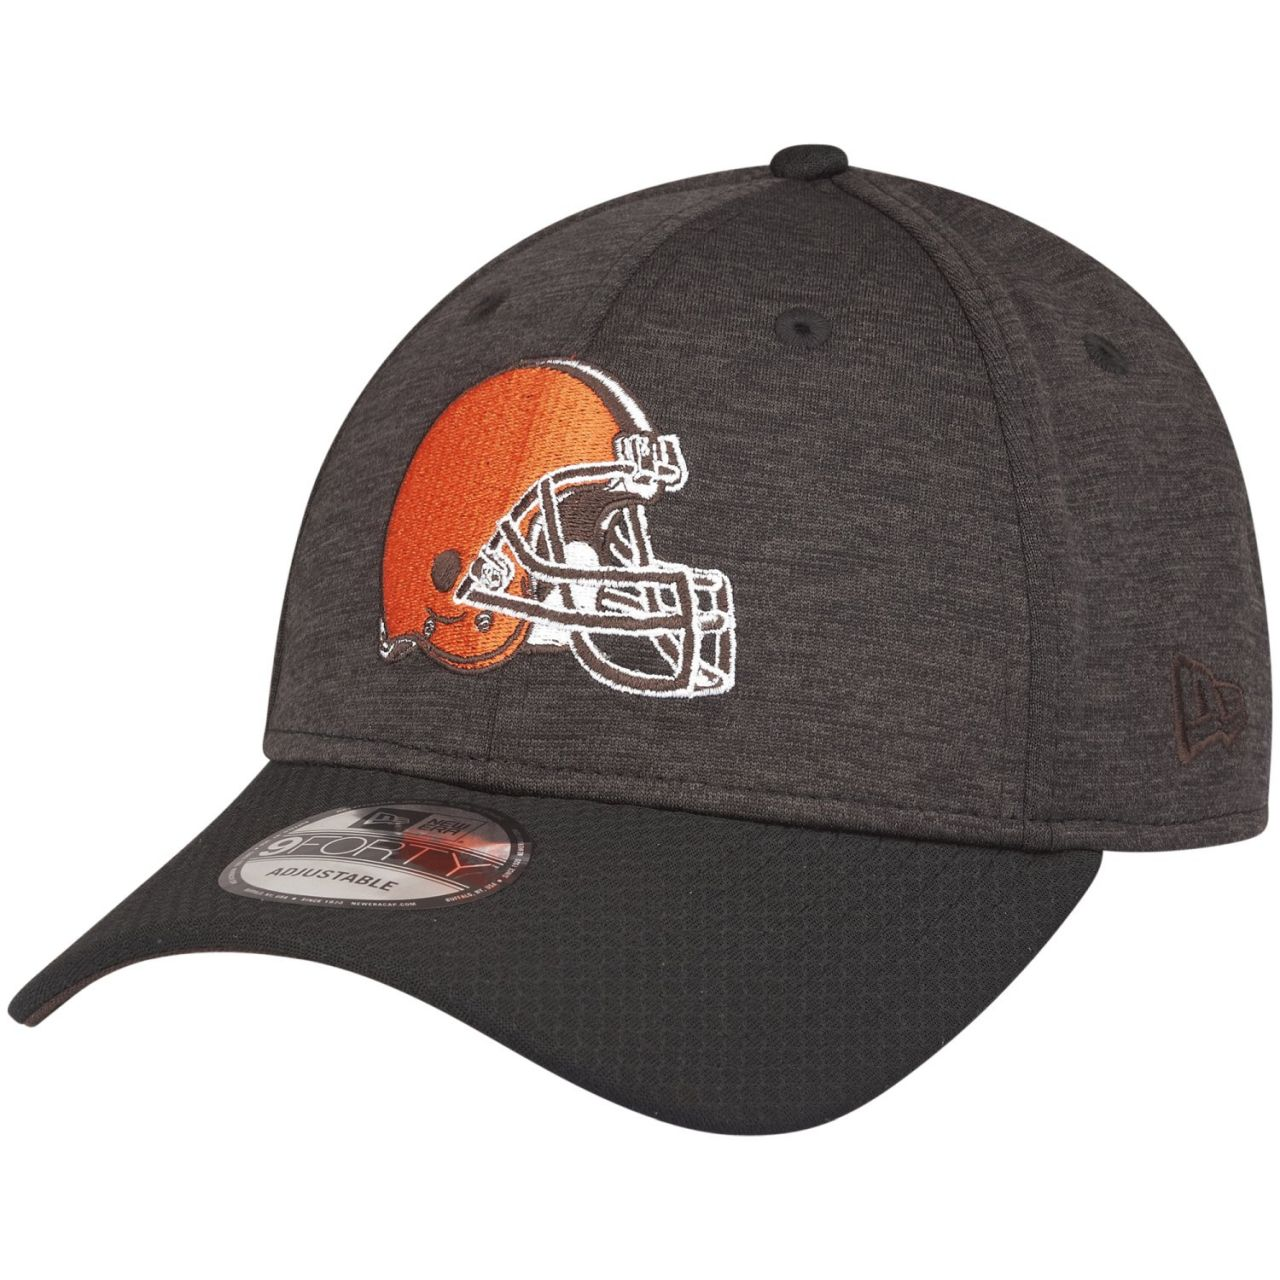 amfoo - New Era 9Forty NFL Cap - SHADOW HEX Cleveland Browns Helm